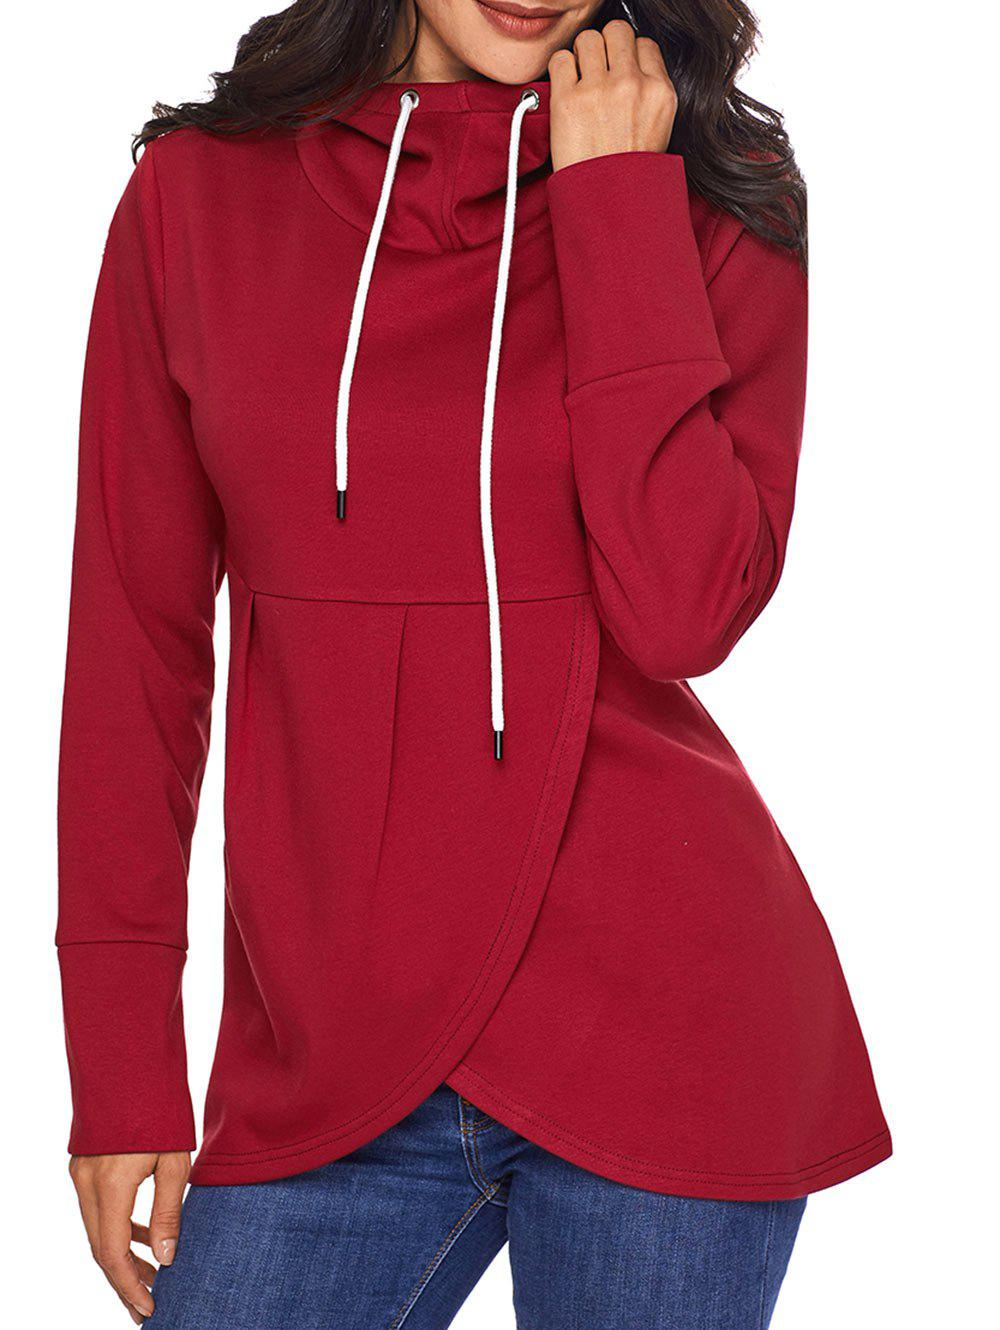 Overlap Pullover Drawstring Hoodie - RED M